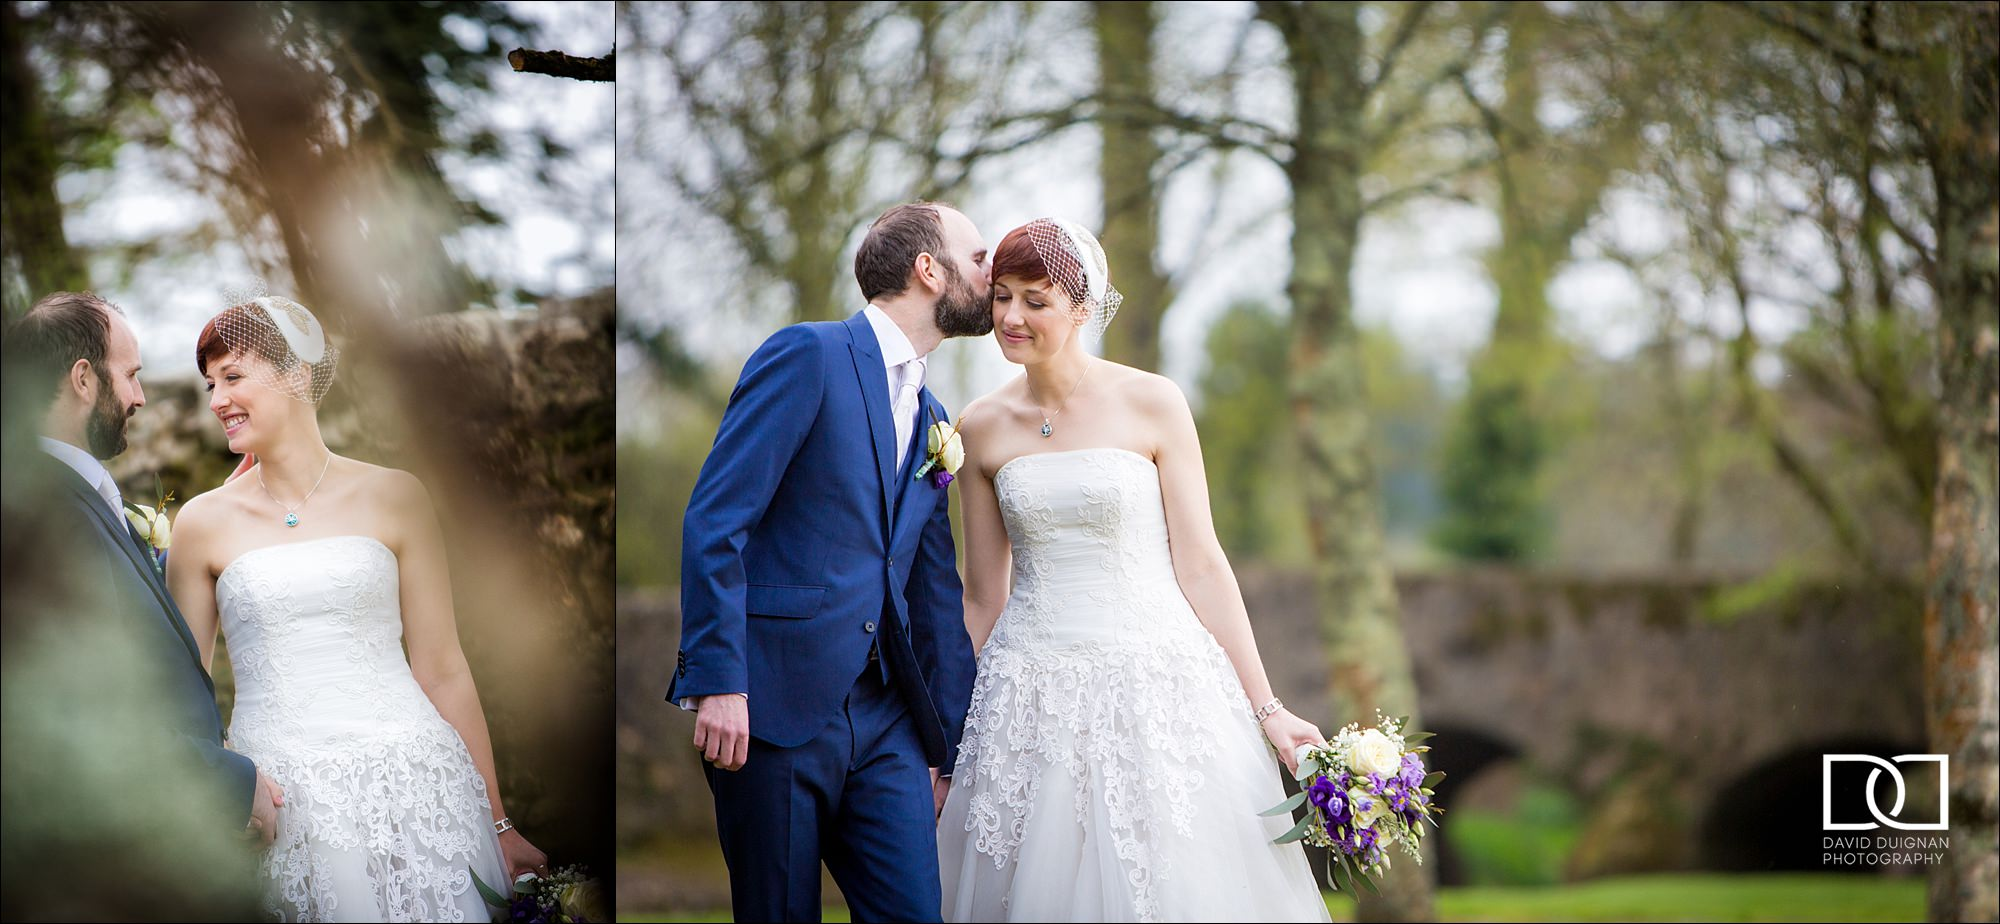 dublin wedding photographer david duignan photography horetown house wedding wexford Ireland 0021